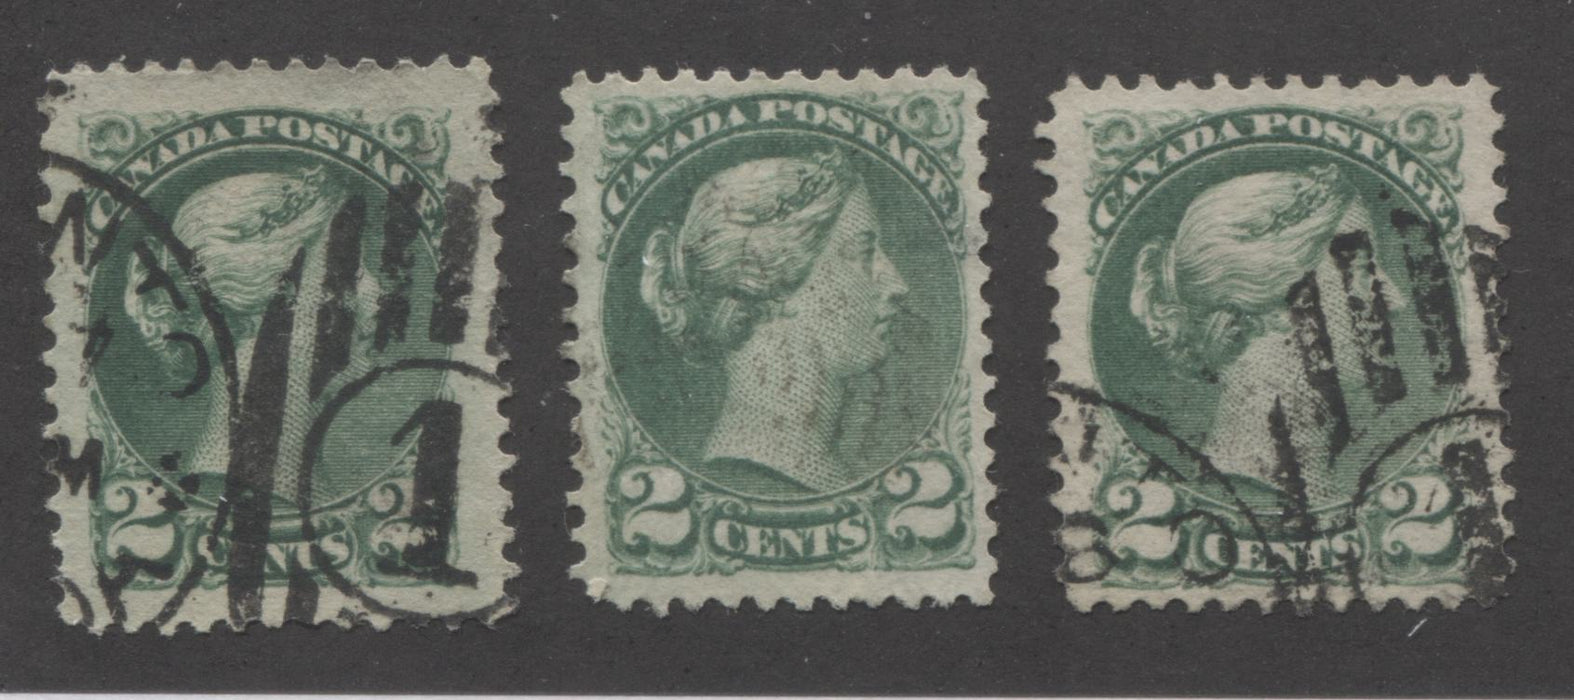 Canada #36 2c Green Queen Victoria, 1870-1897 Small Queen Issue, Two Very Fine and One Very Good Used Single of the Montreal Printing Brixton Chrome